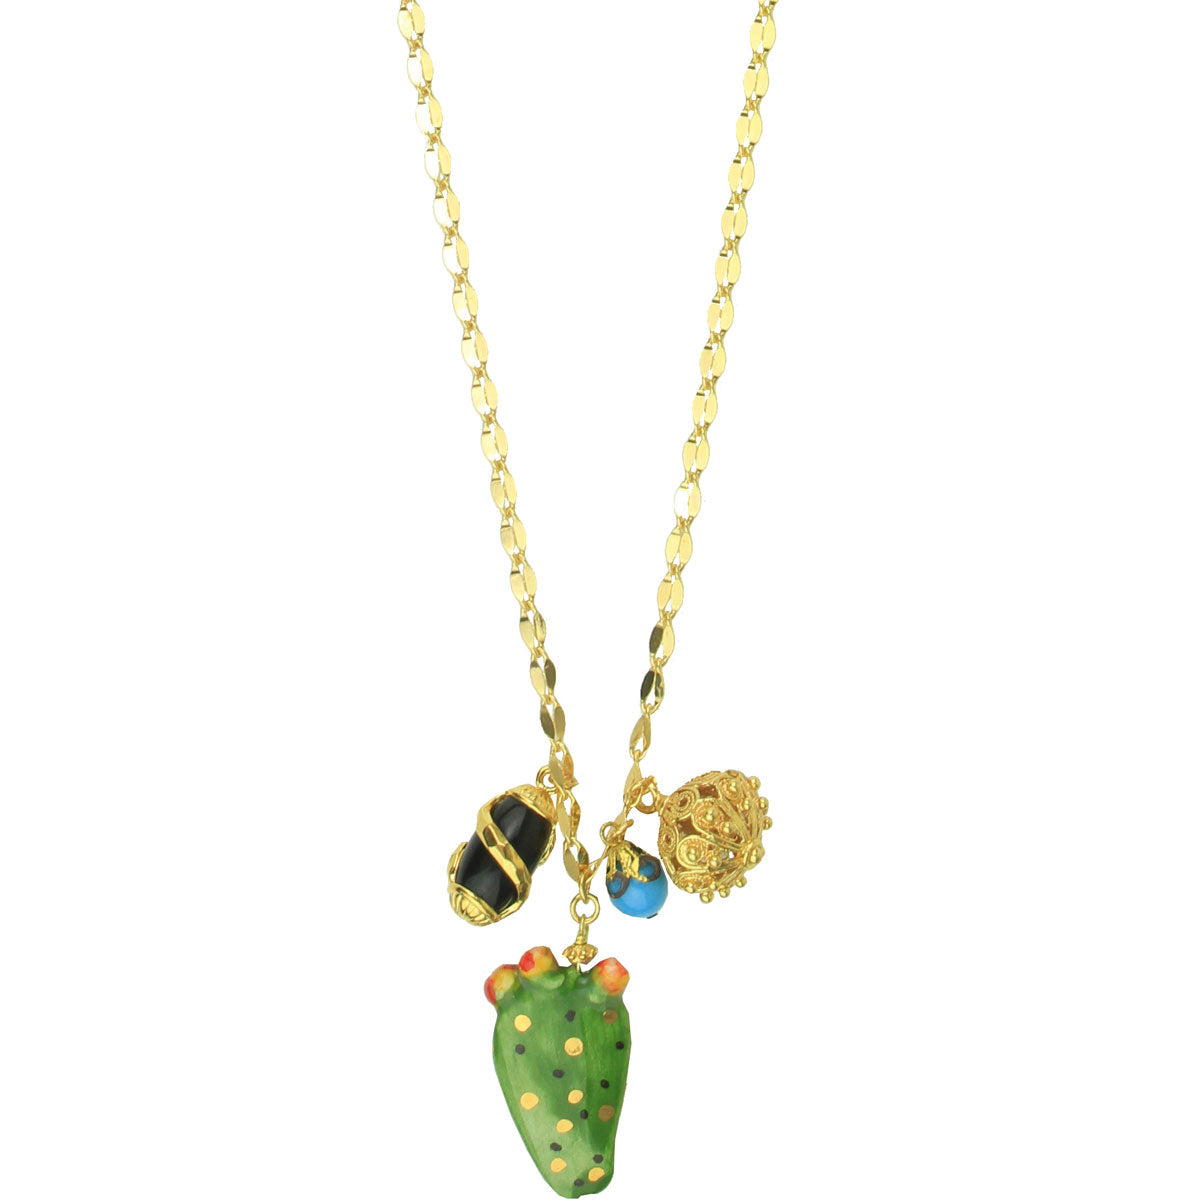 Angelica Gold Plated Chain Necklace With Charms